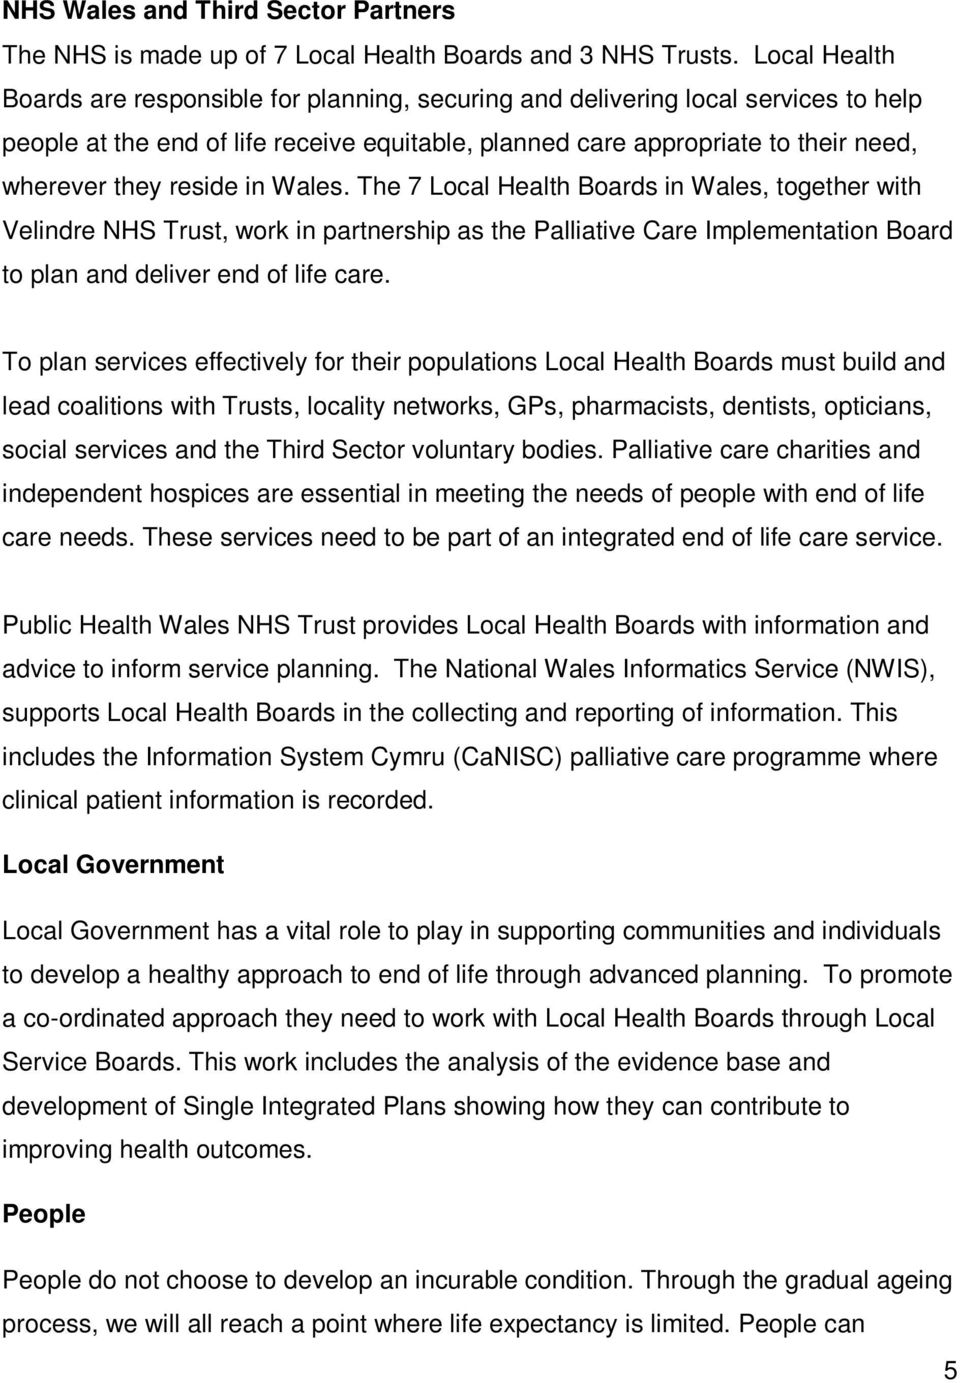 reside in Wales. The 7 Local Health Boards in Wales, together with Velindre NHS Trust, work in partnership as the Palliative Care Implementation Board to plan and deliver end of life care.